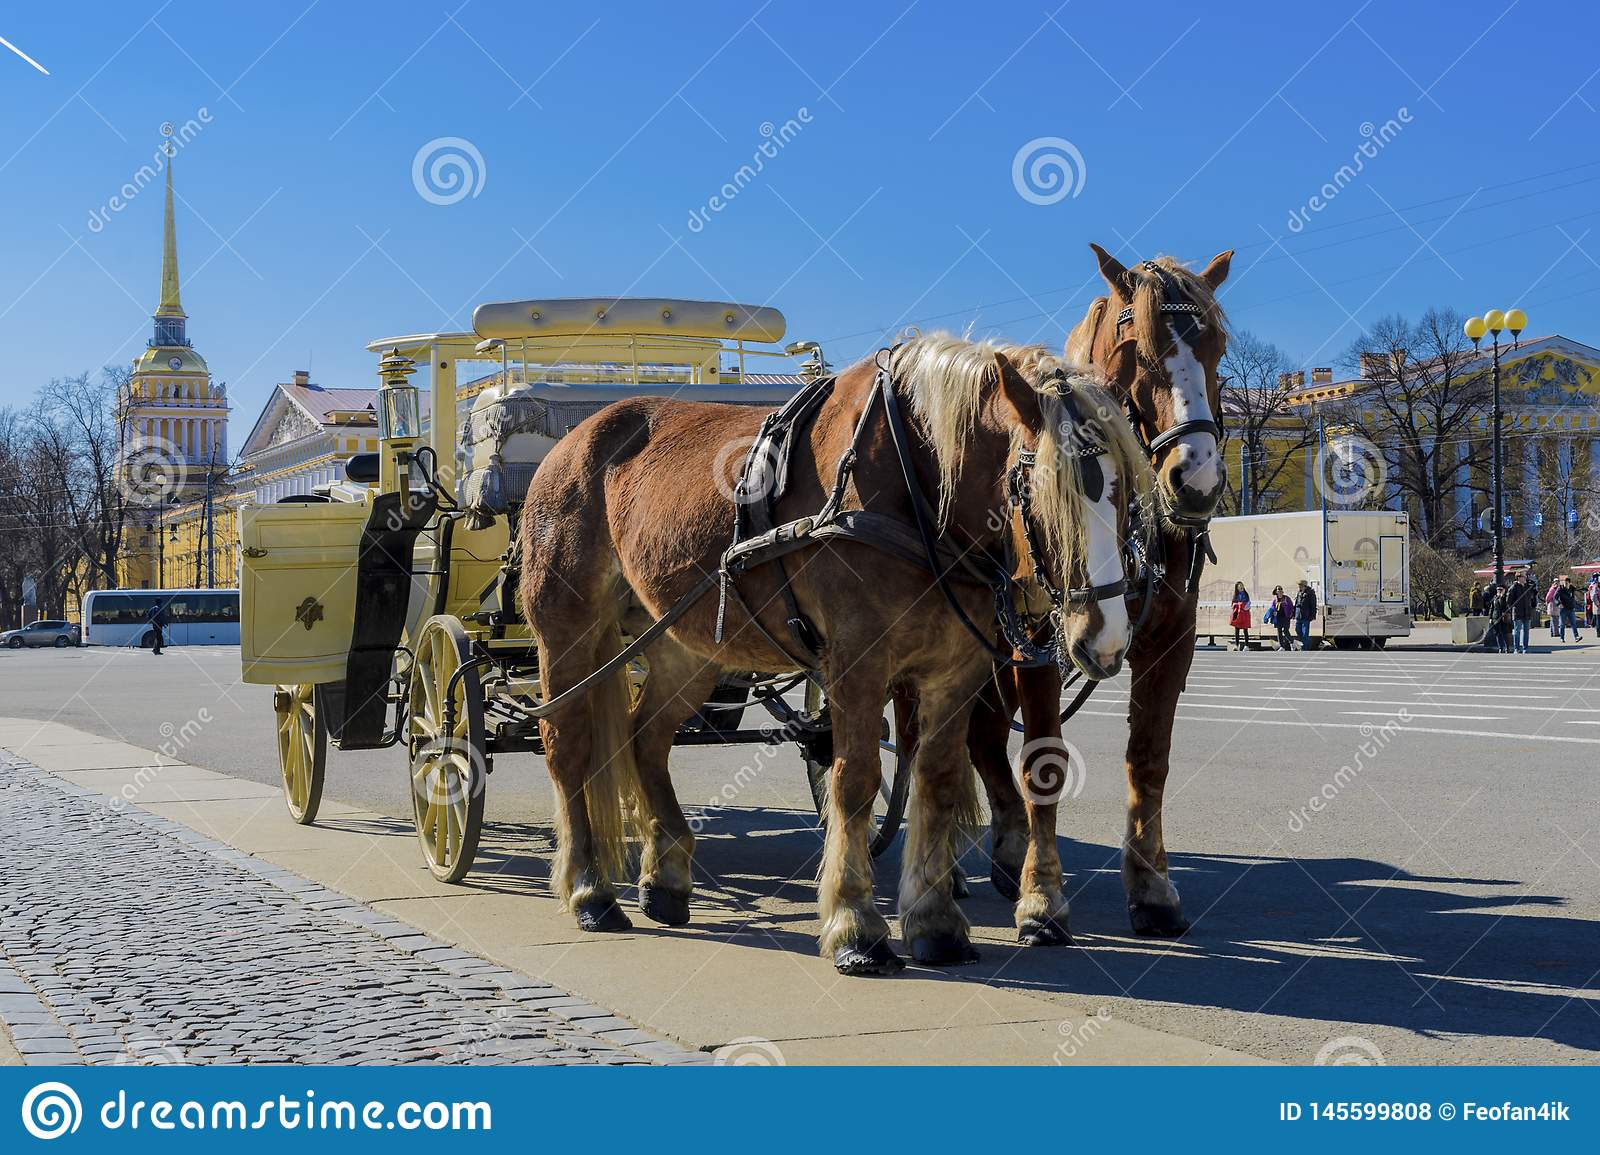 Old Retro Carriage in Front of Winter Palace Hermitage Museum on Palace Square in St. Petersburg, Russia. Historical Old-